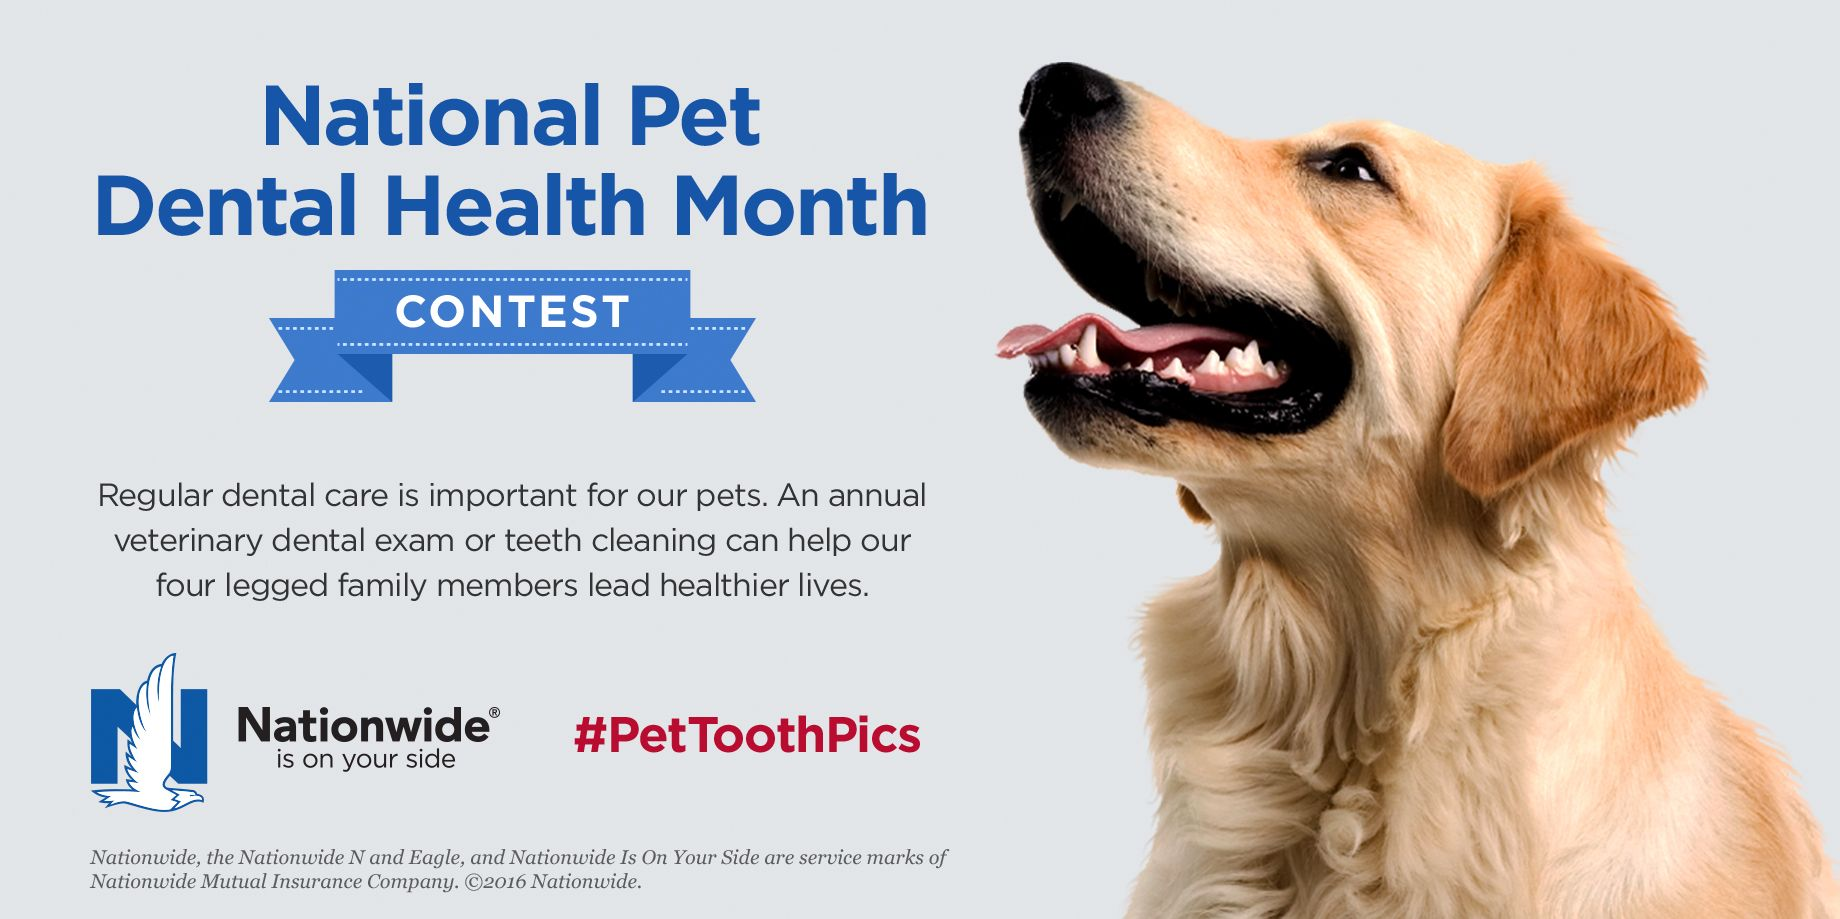 February is National Pet Dental Health Month. Show us your